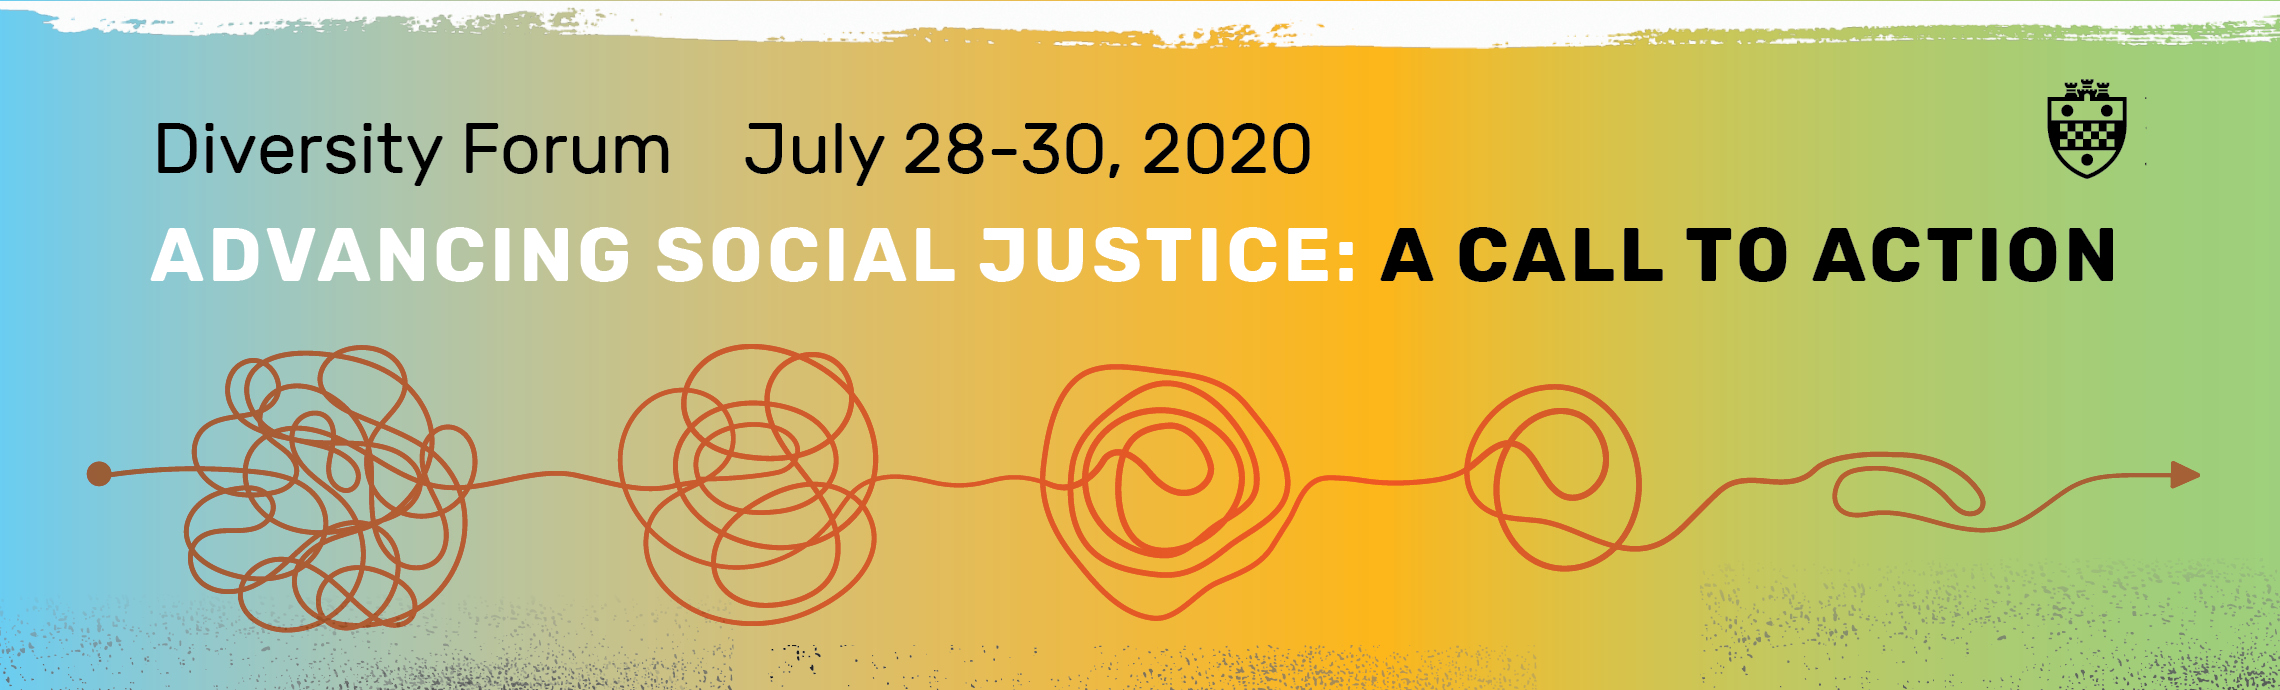 Advancing Social Justice: A Call to Action